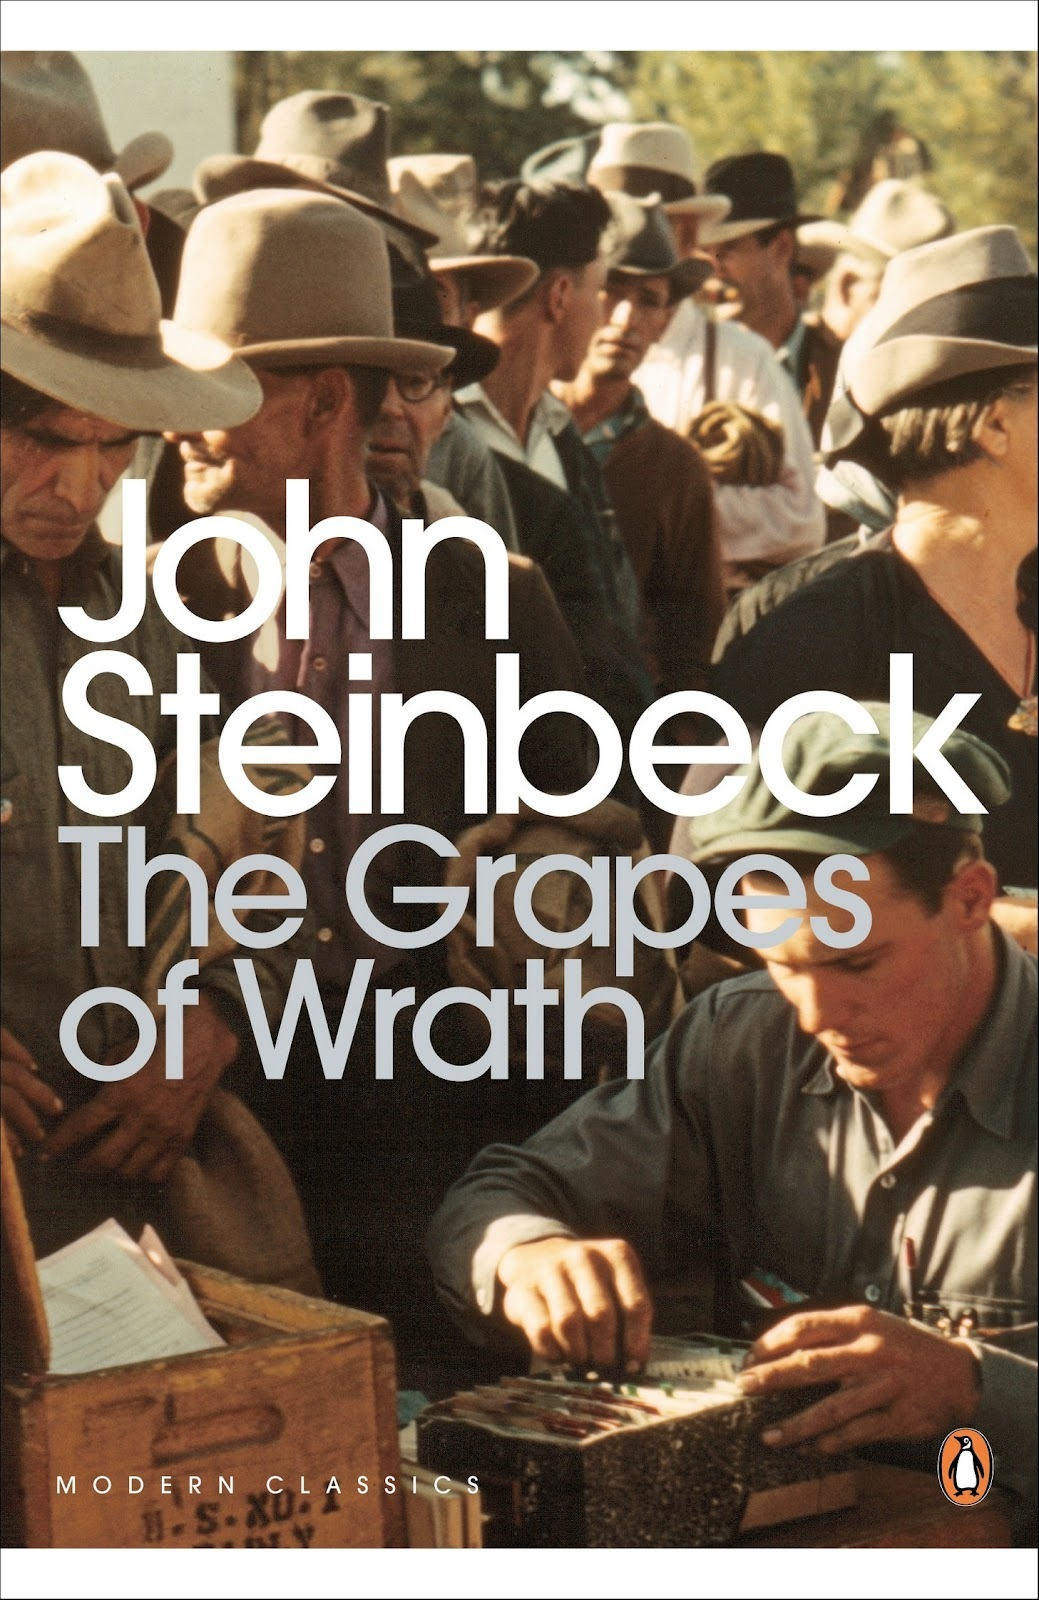 an analysis of the life in oklahoma in the novel the grapes of wrath by john steinbeck A short summary of john steinbeck's the grapes of wrath this free synopsis covers all the crucial plot points of the grapes of wrath.